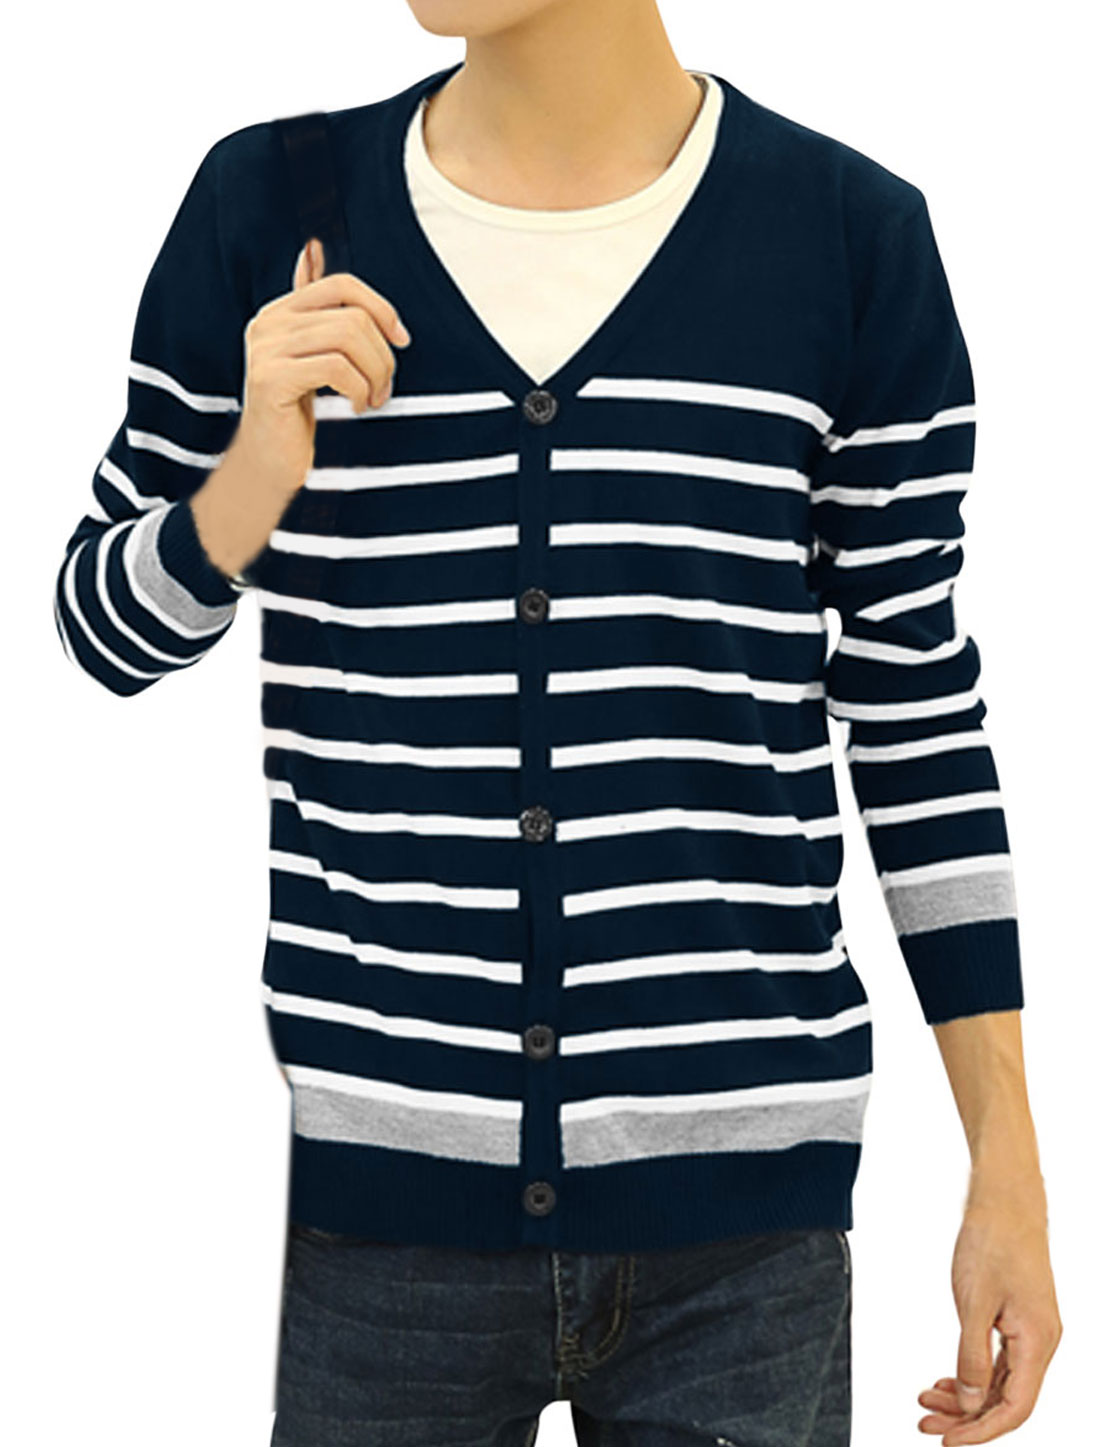 Long Sleeves Bar Striped Casual Knit Cardigan for Men Navy Blue S